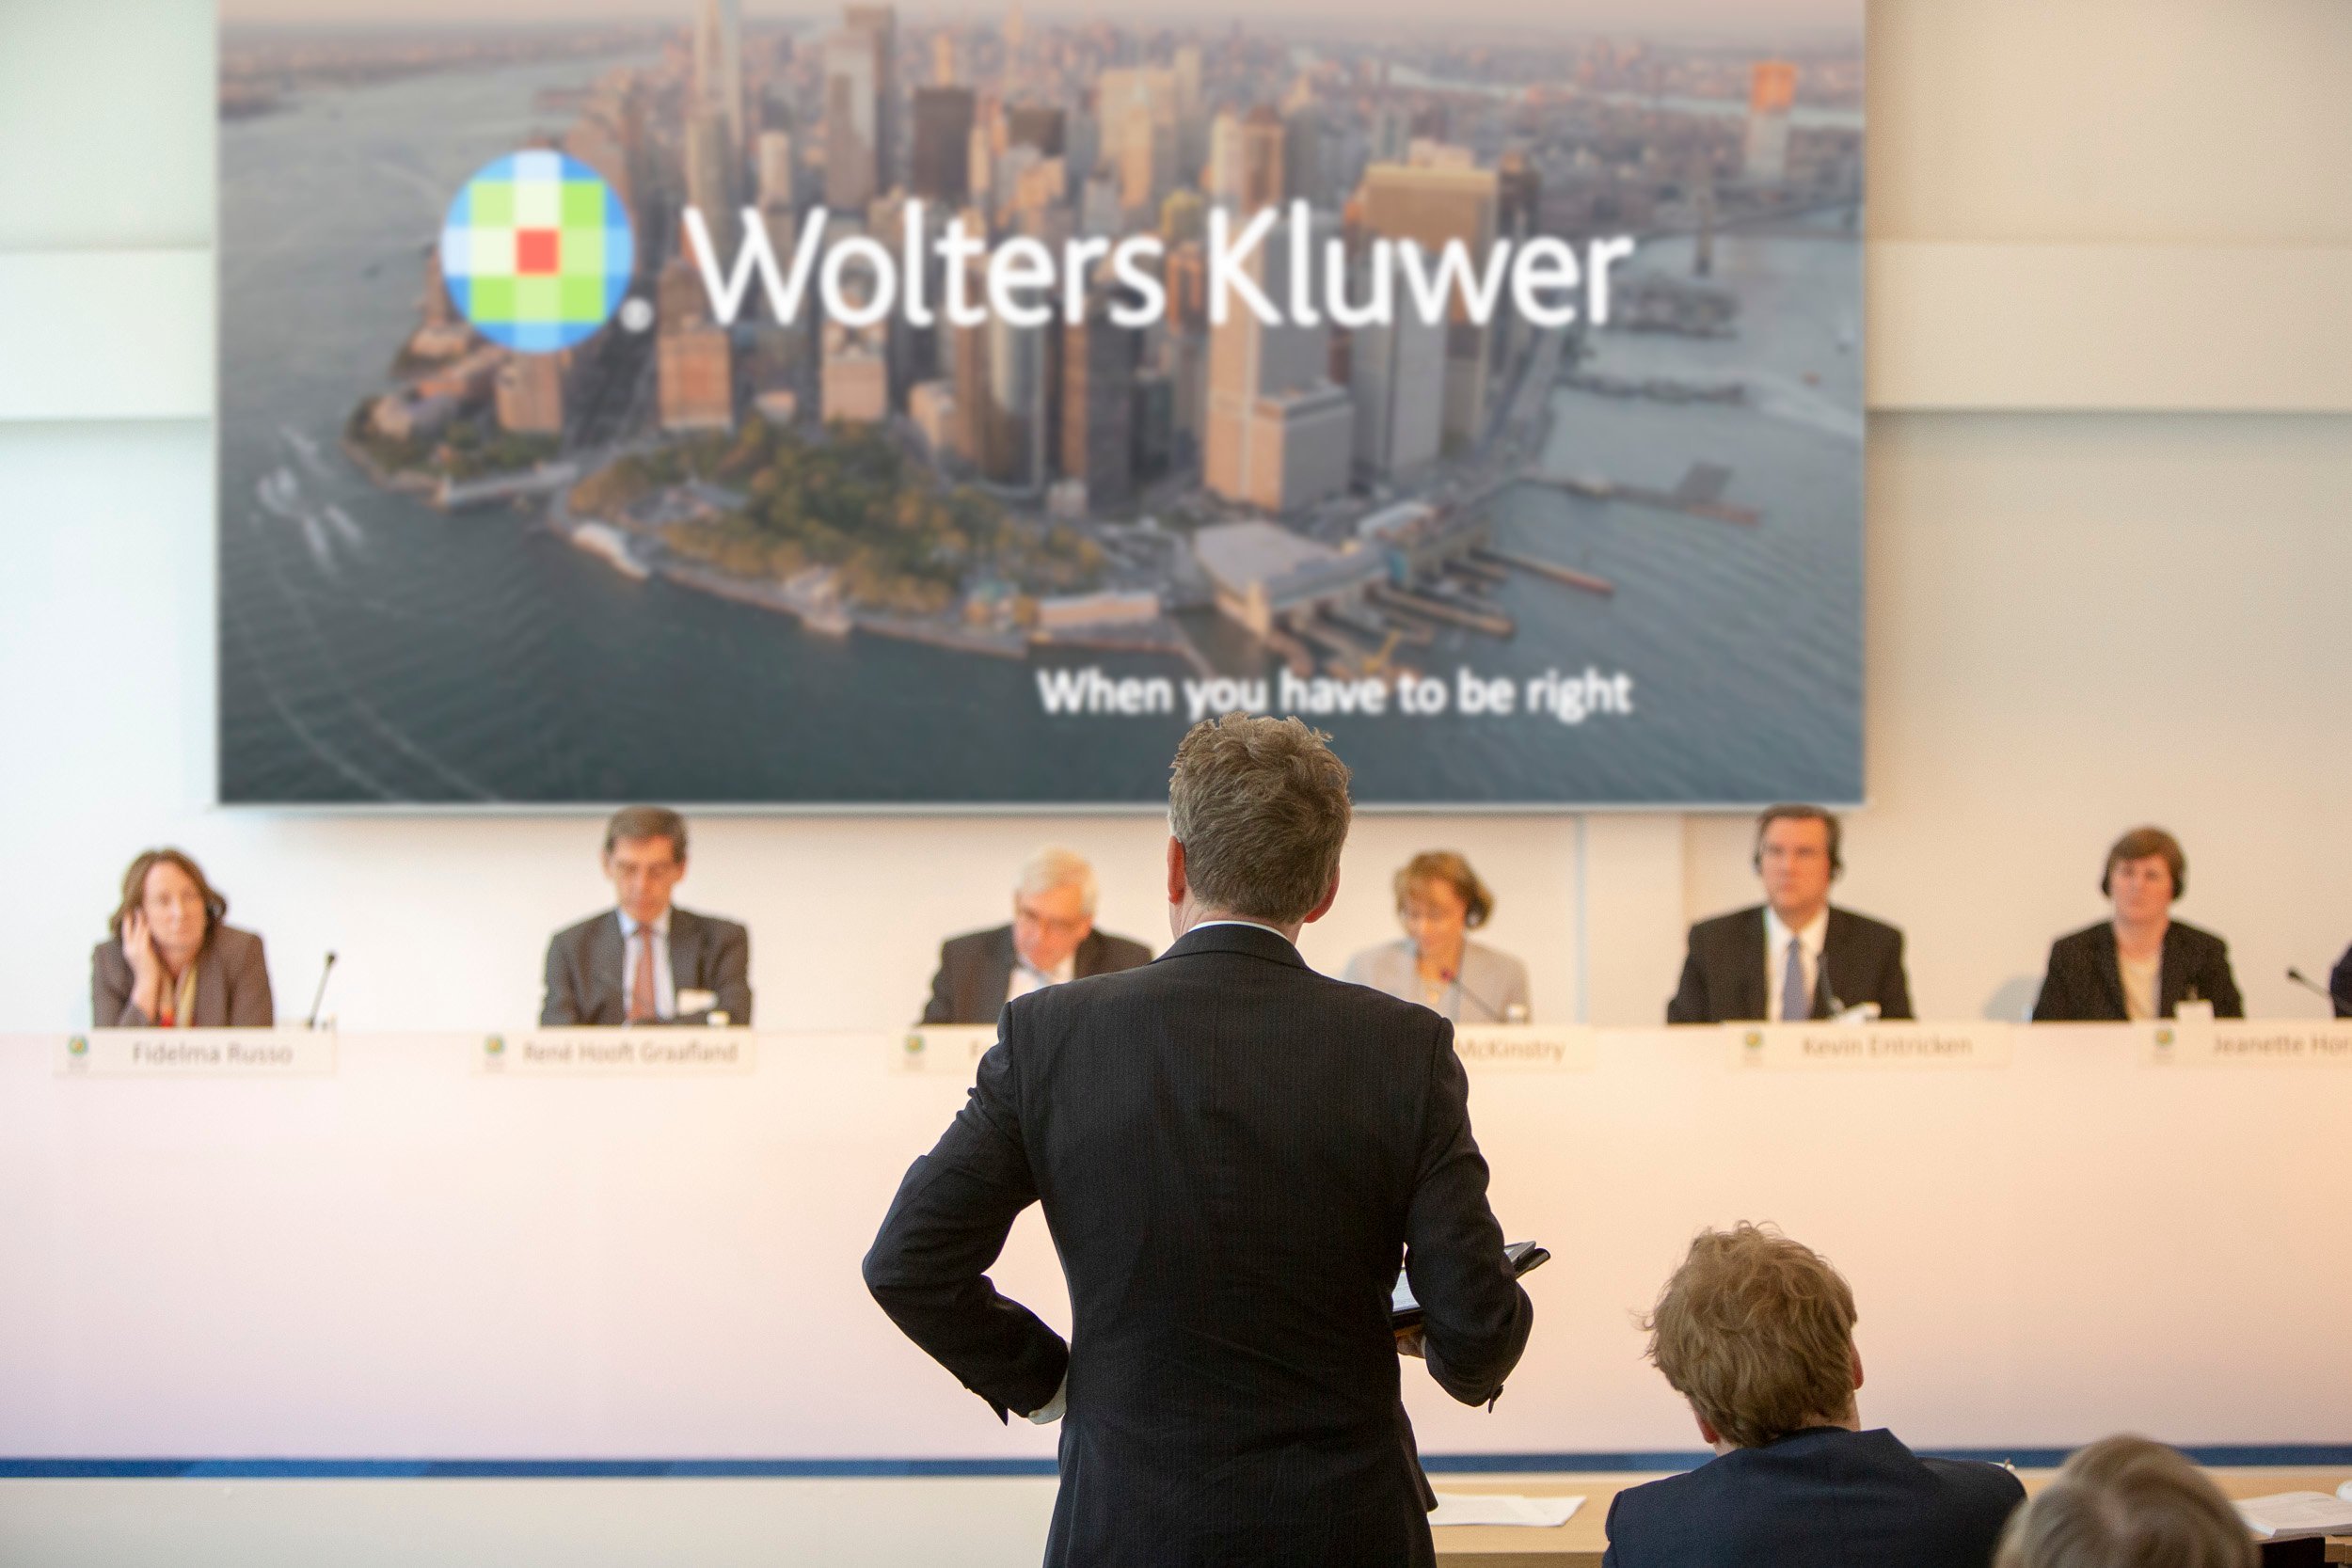 Wolters Kluwer Investors AGMs